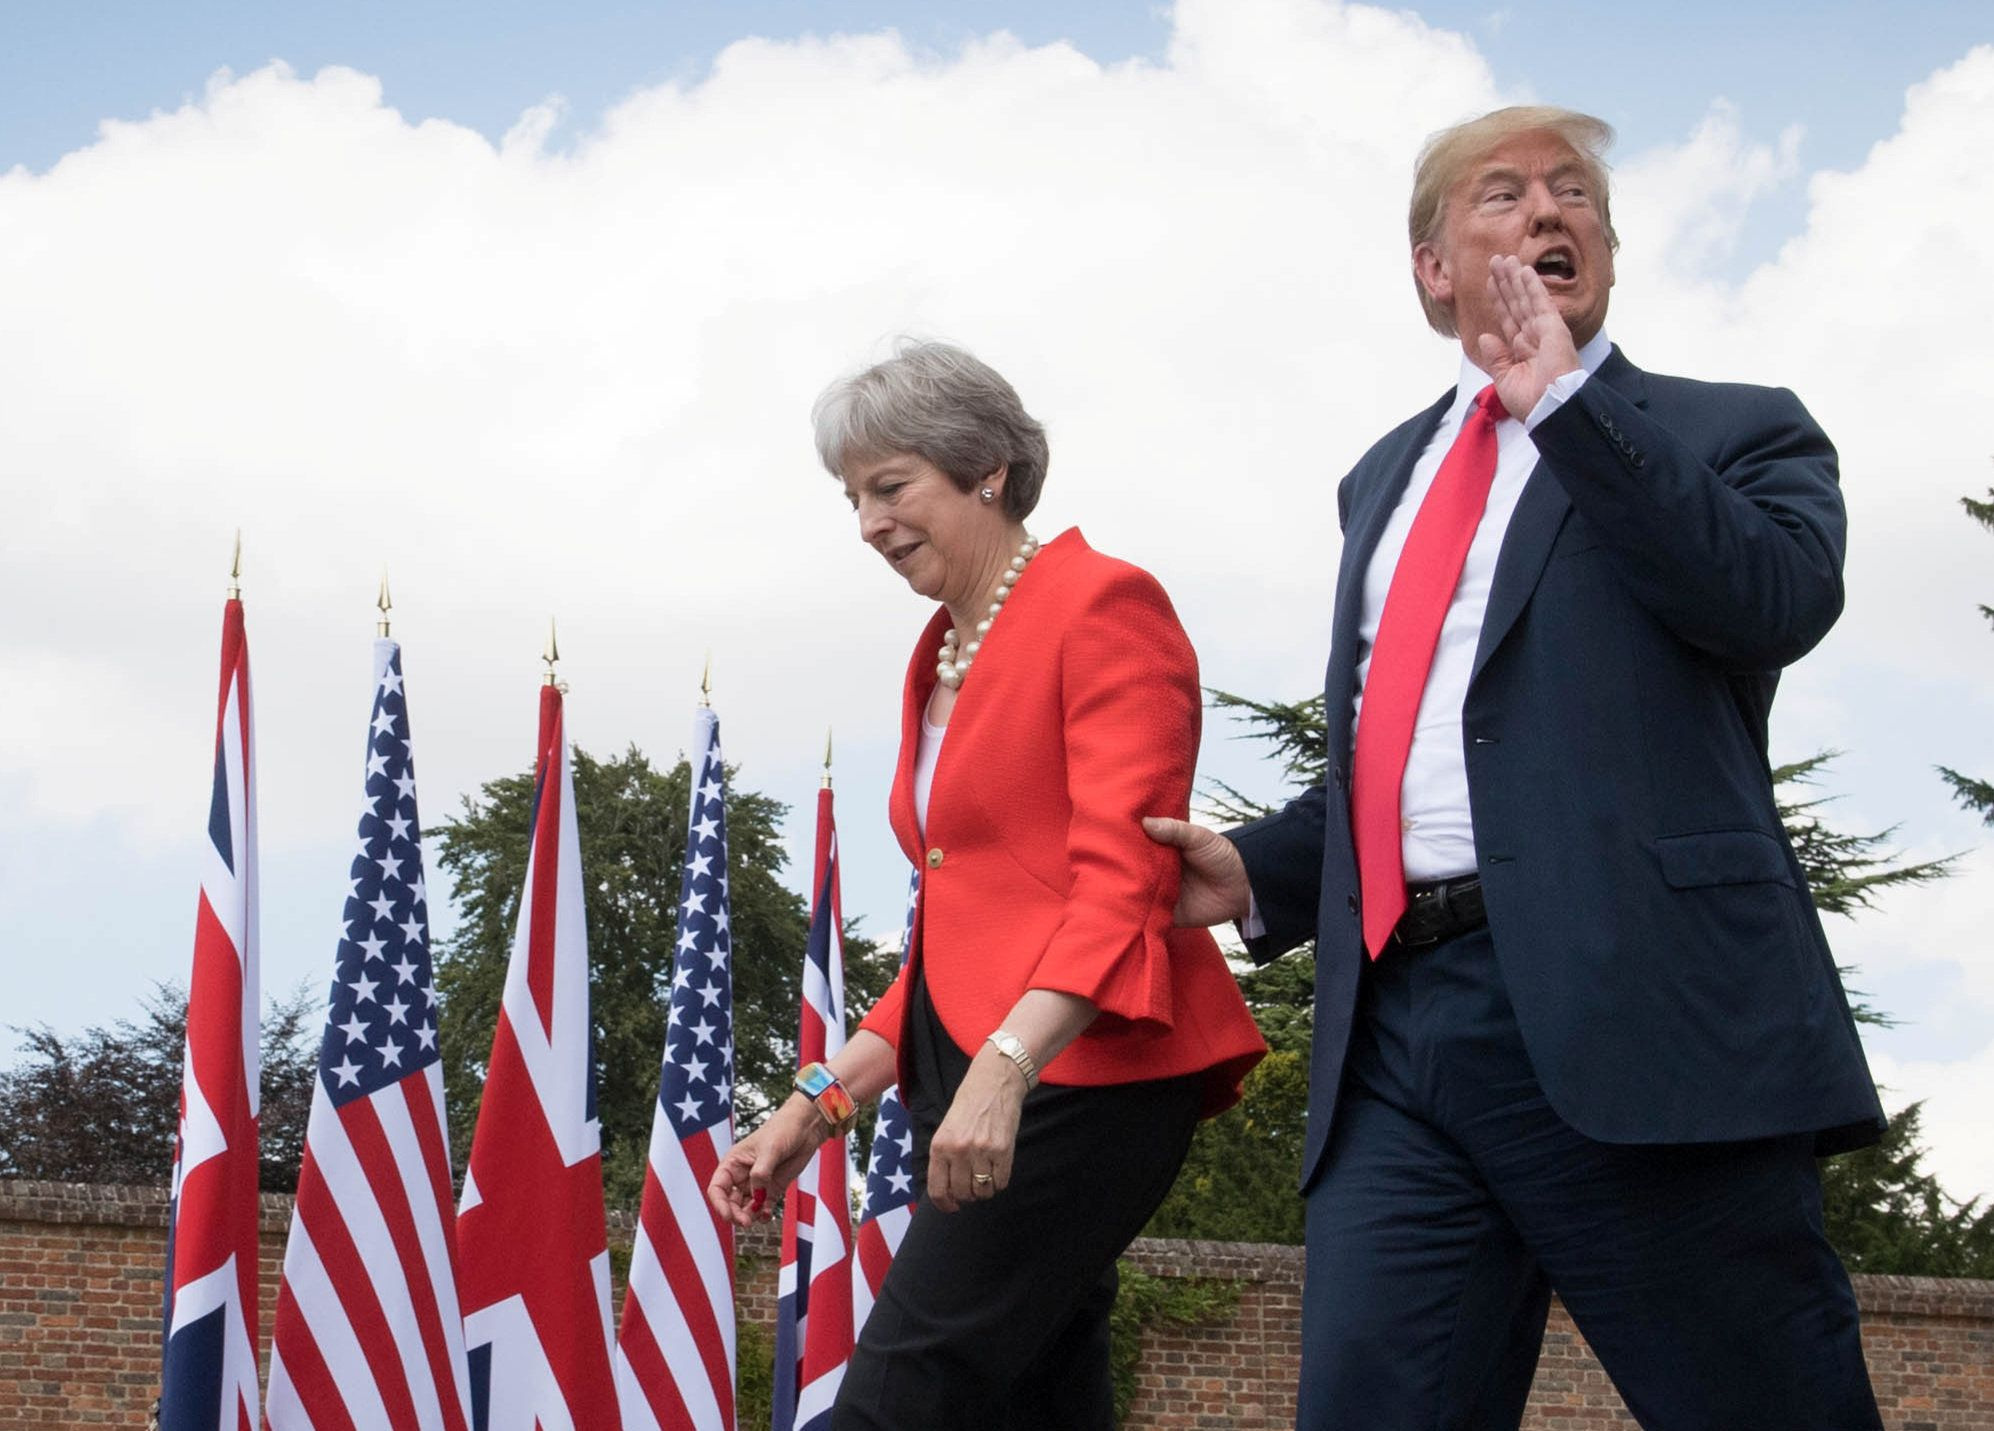 U.S. President Donald Trump walks with Britain's Prime Minister Theresa May prior to a joint press conference at Chequers, near Aylesbury, Britain July 13, 2018. Stefan Rousseau/Pool via REUTERS